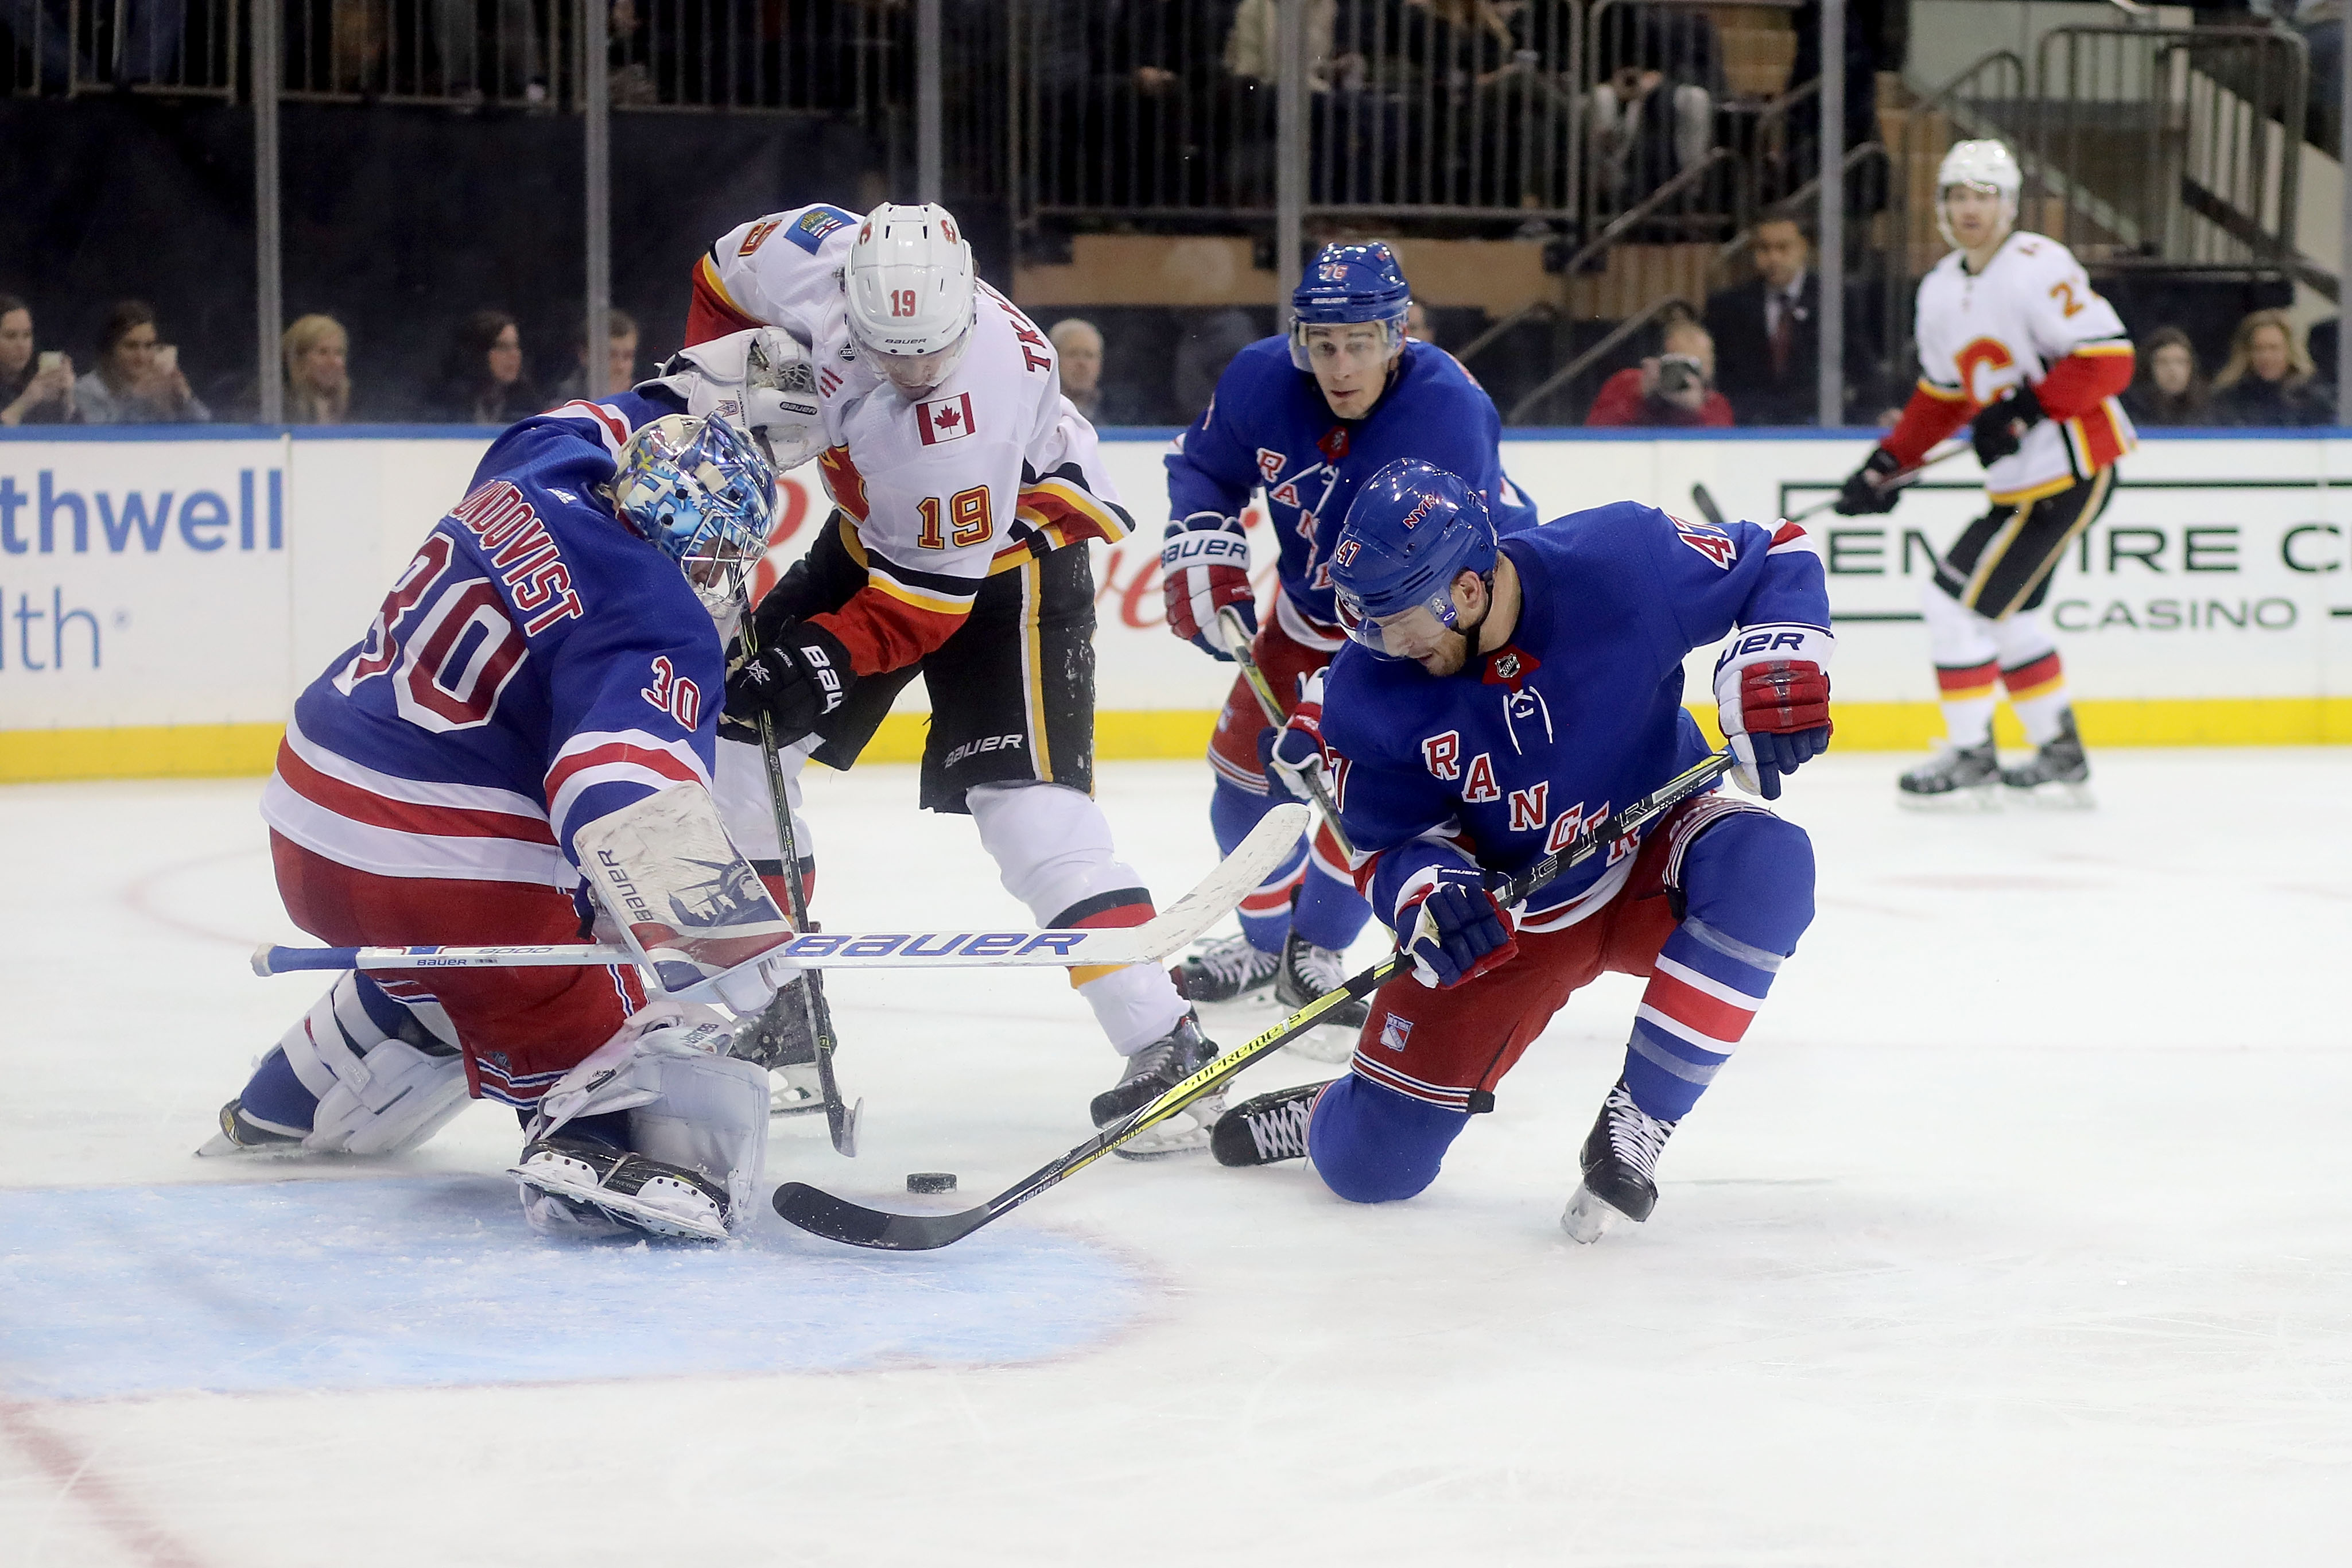 Memorable birthday: Rangers' Lundqvist sets record with another 50-save win